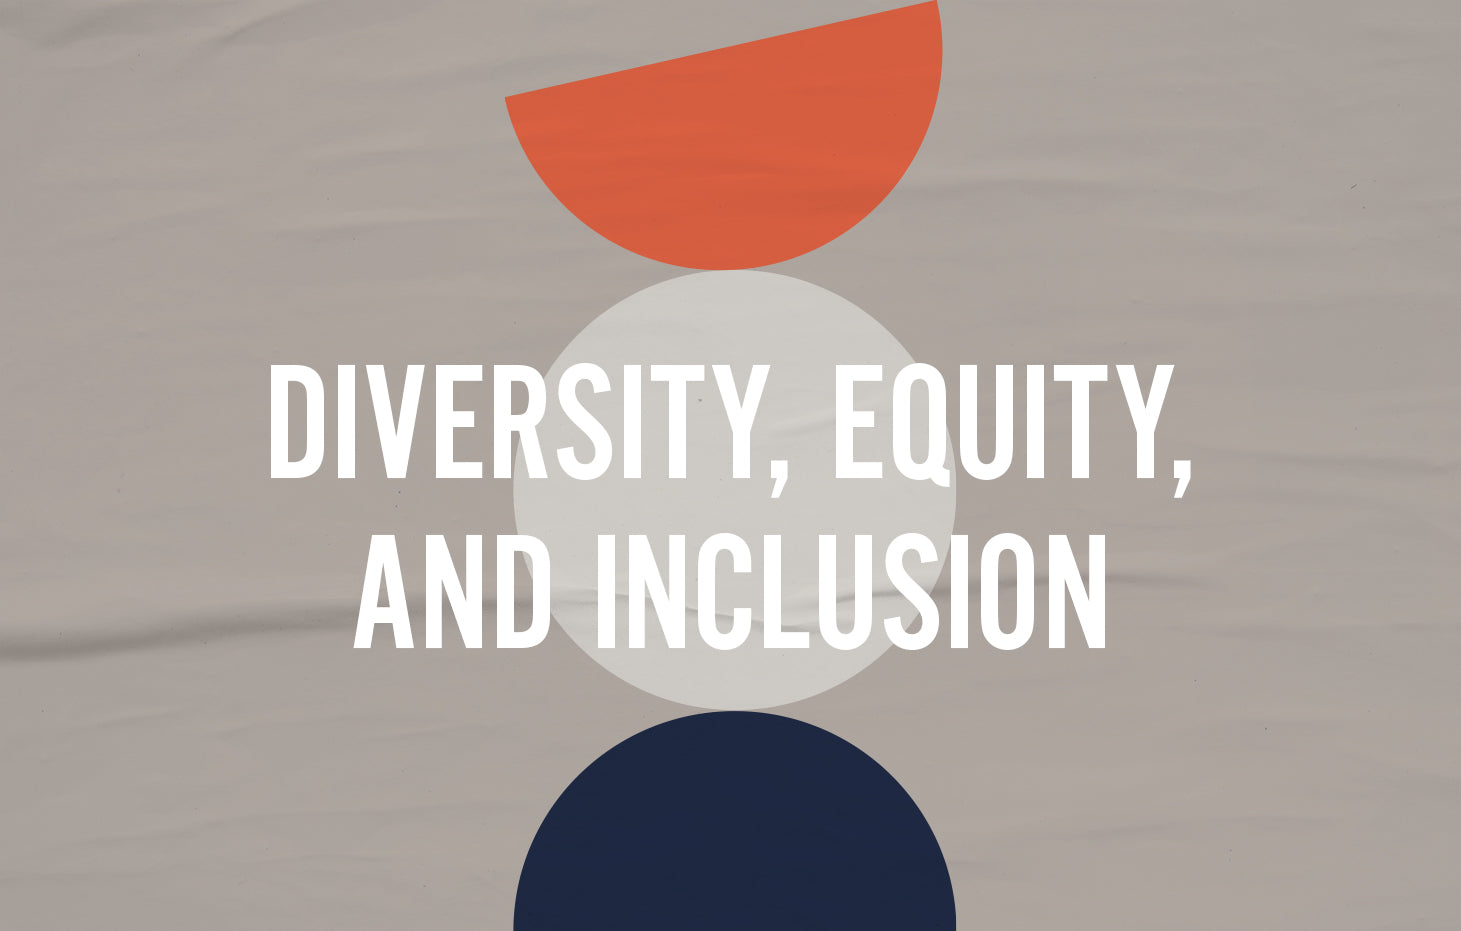 OUR COMMITMENT TO DIVERSITY, EQUITY, AND INCLUSION